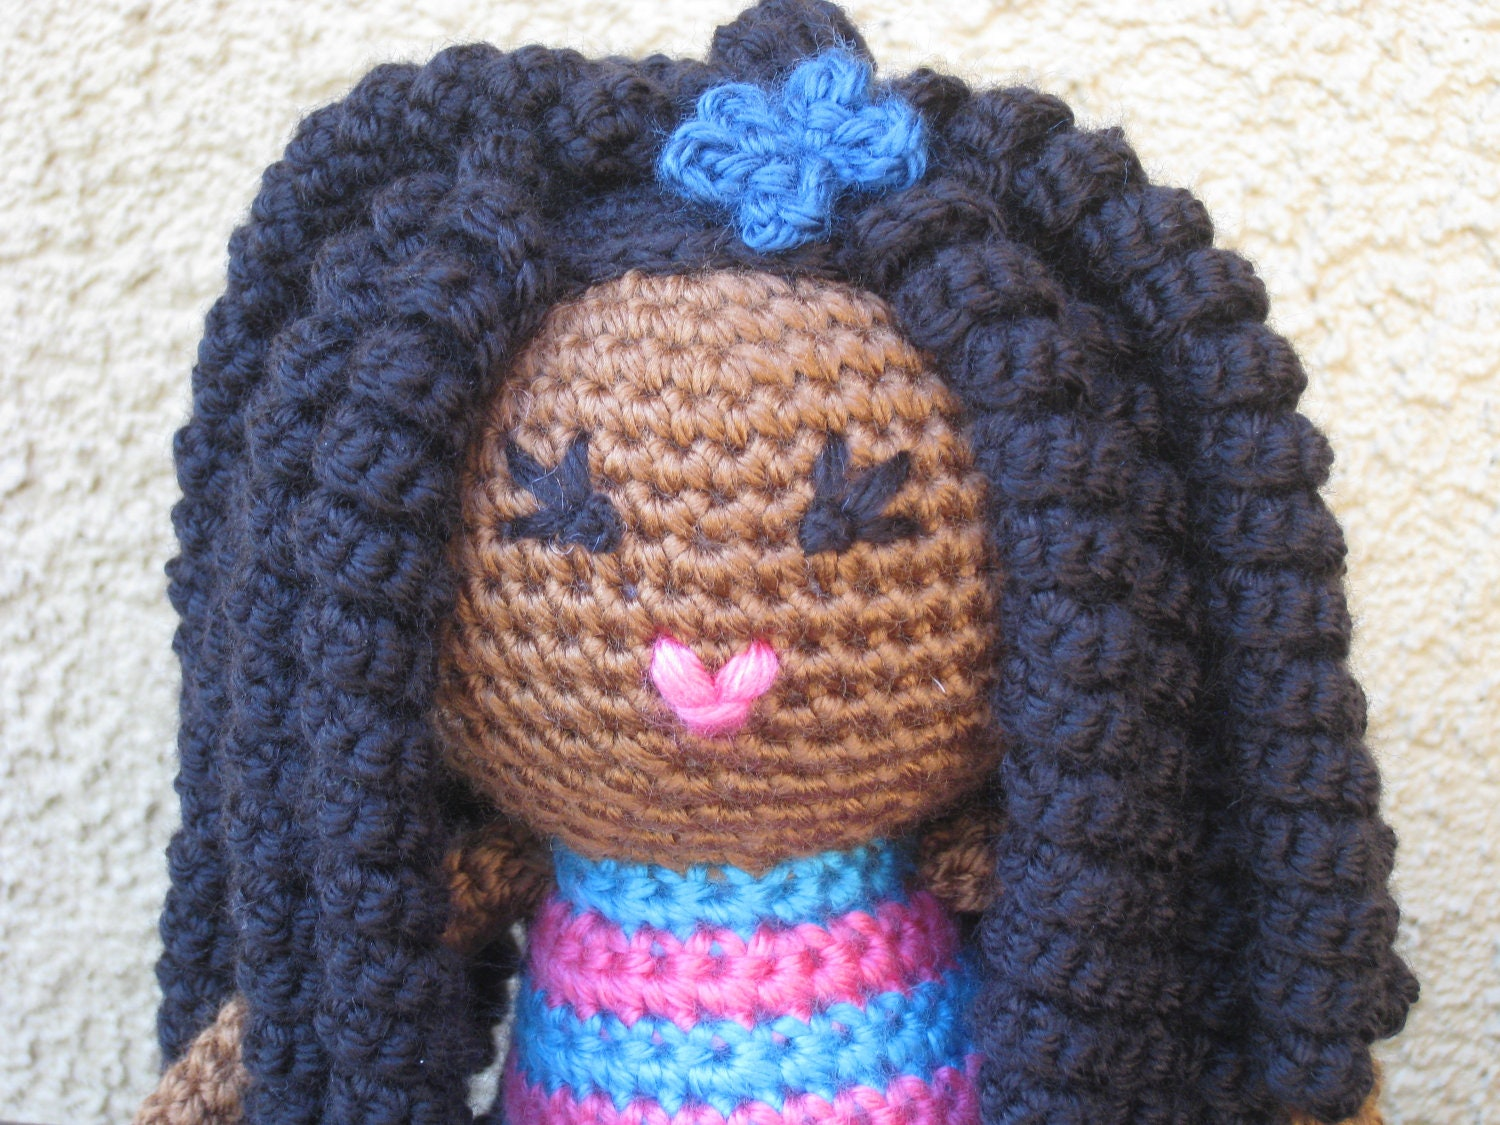 Crochet Hair Doll : CROCHET PATTERN African Curly Haired Doll Plush by LeenGreenBean